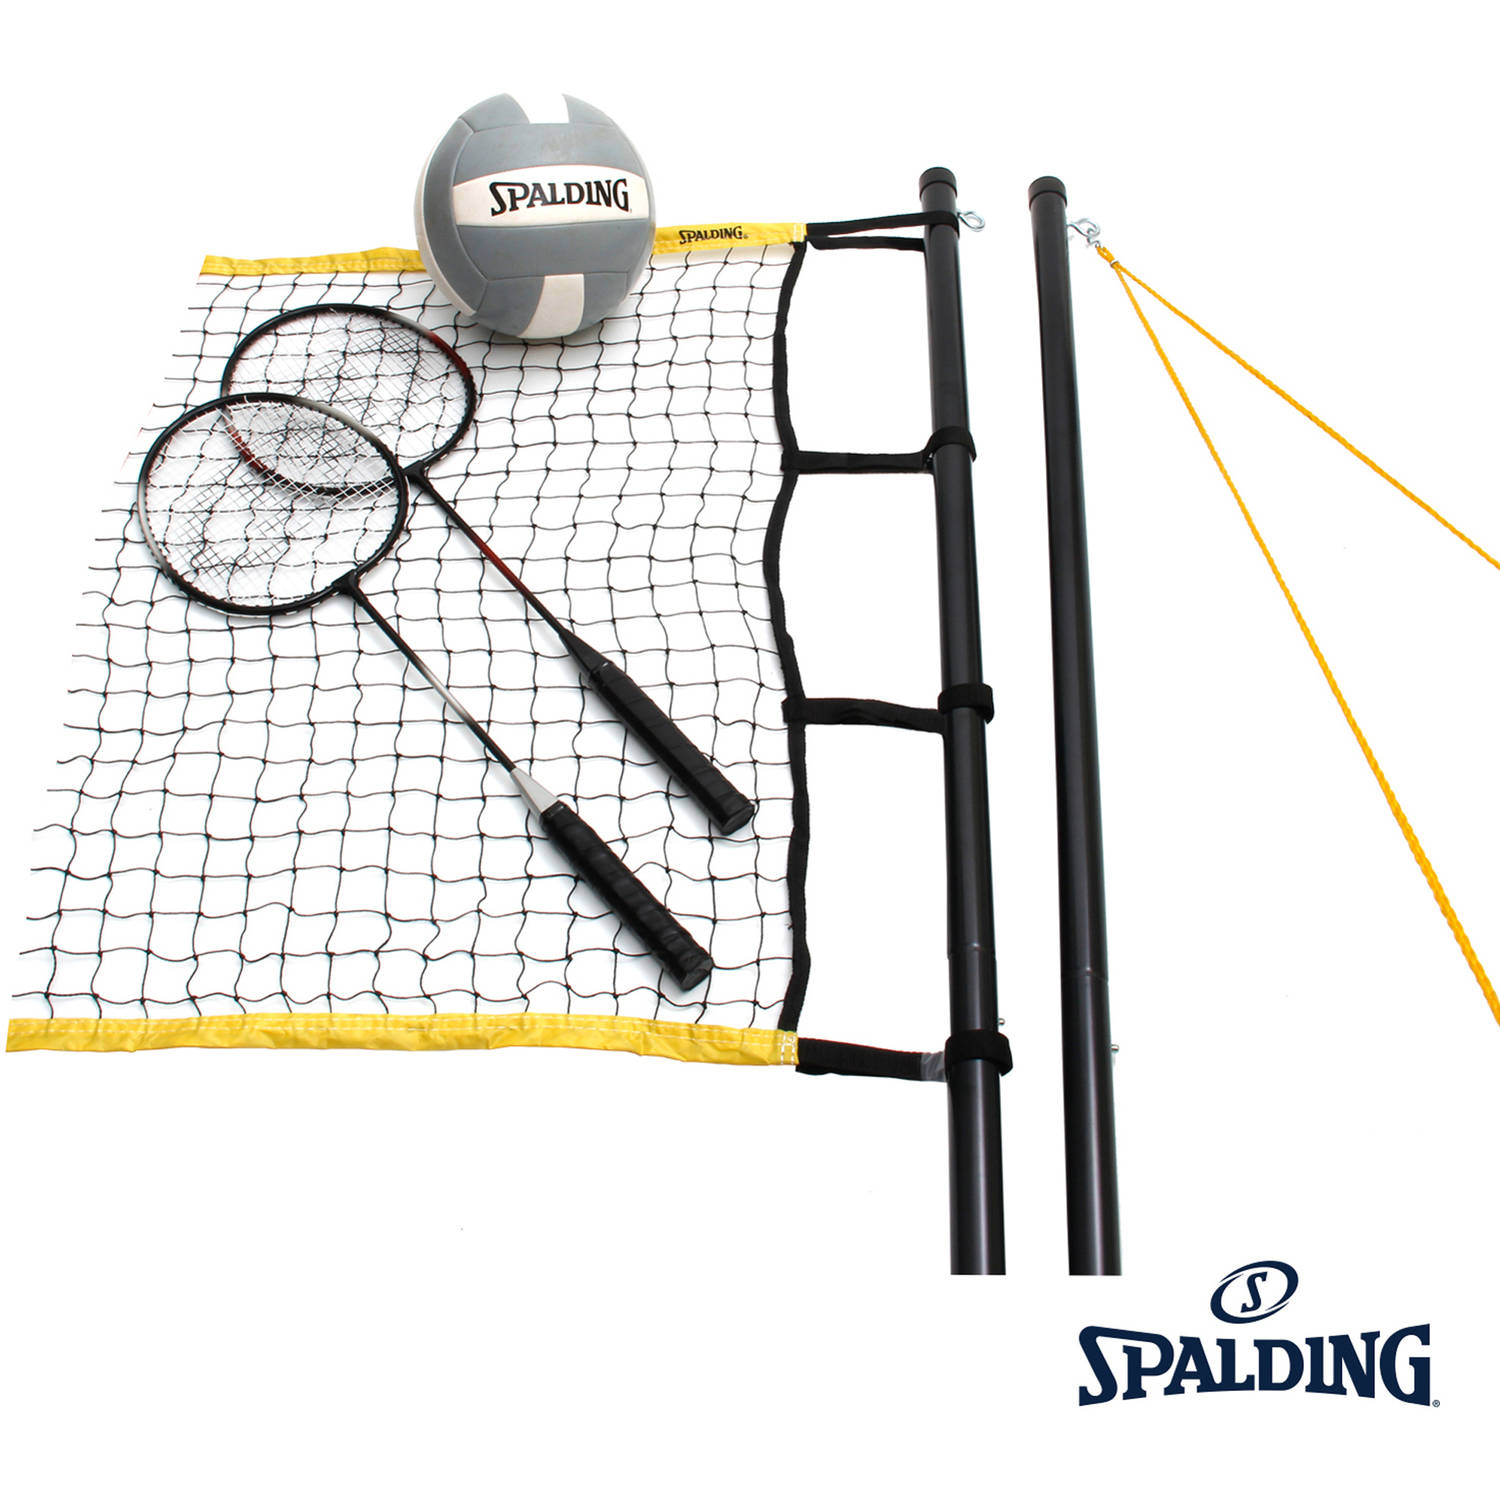 Spalding Premier Volleyball Badminton Combo by Spalding